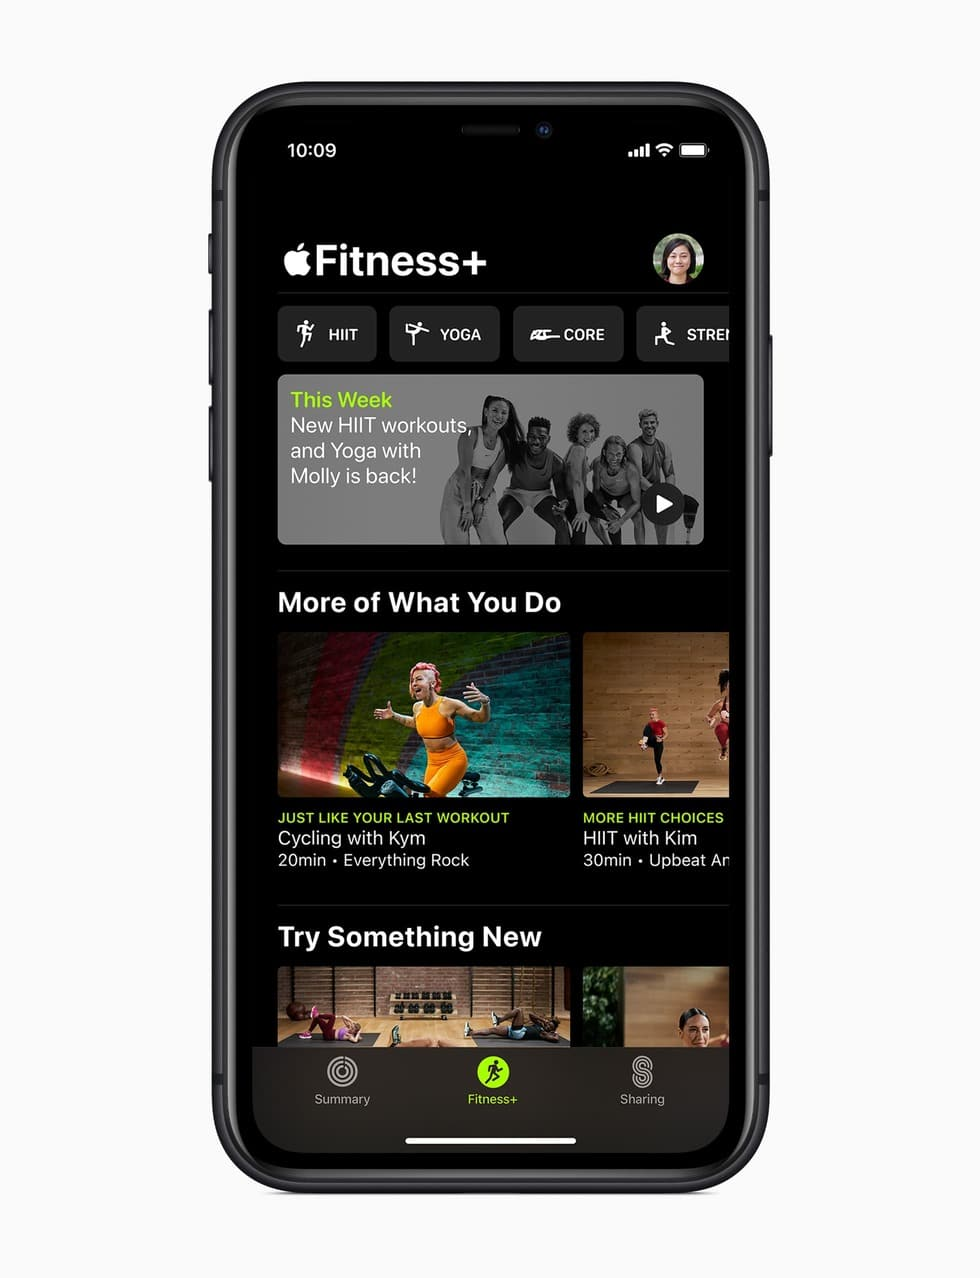 Apple_fitness-plus-main-screen-iphone11_09152020